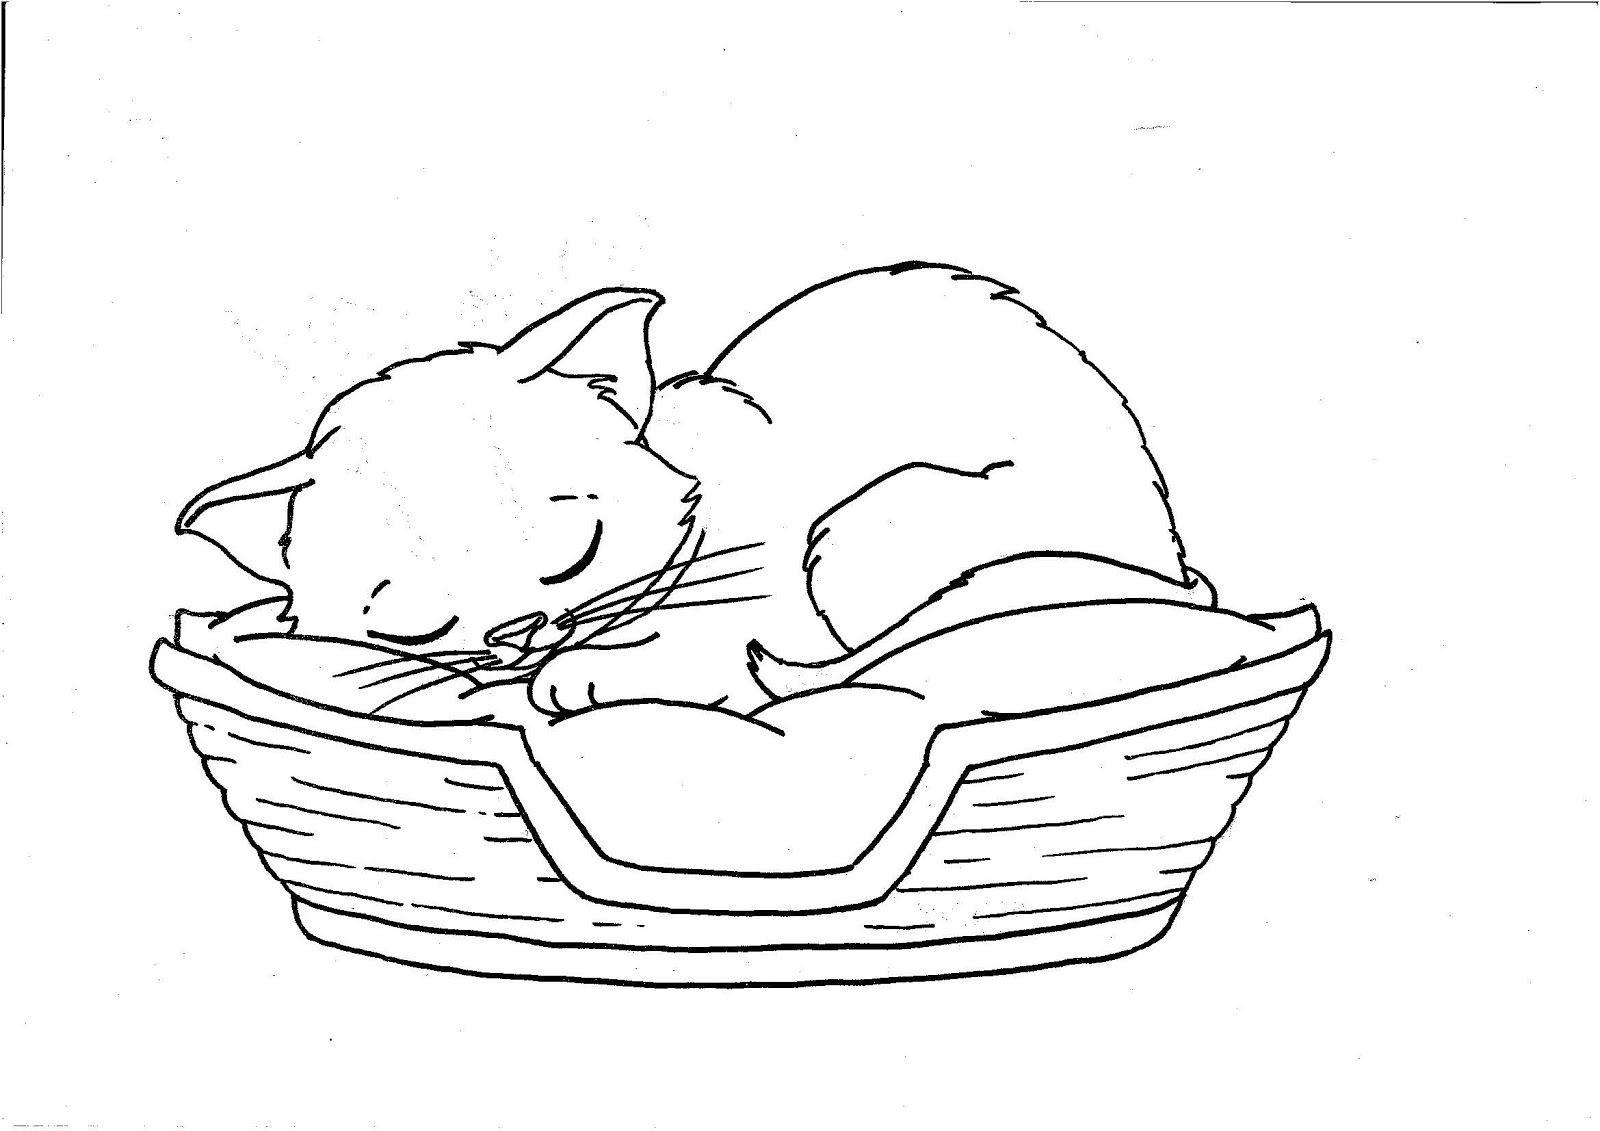 Kitten coloring pages best coloring pages for kids for Sleeping coloring pages